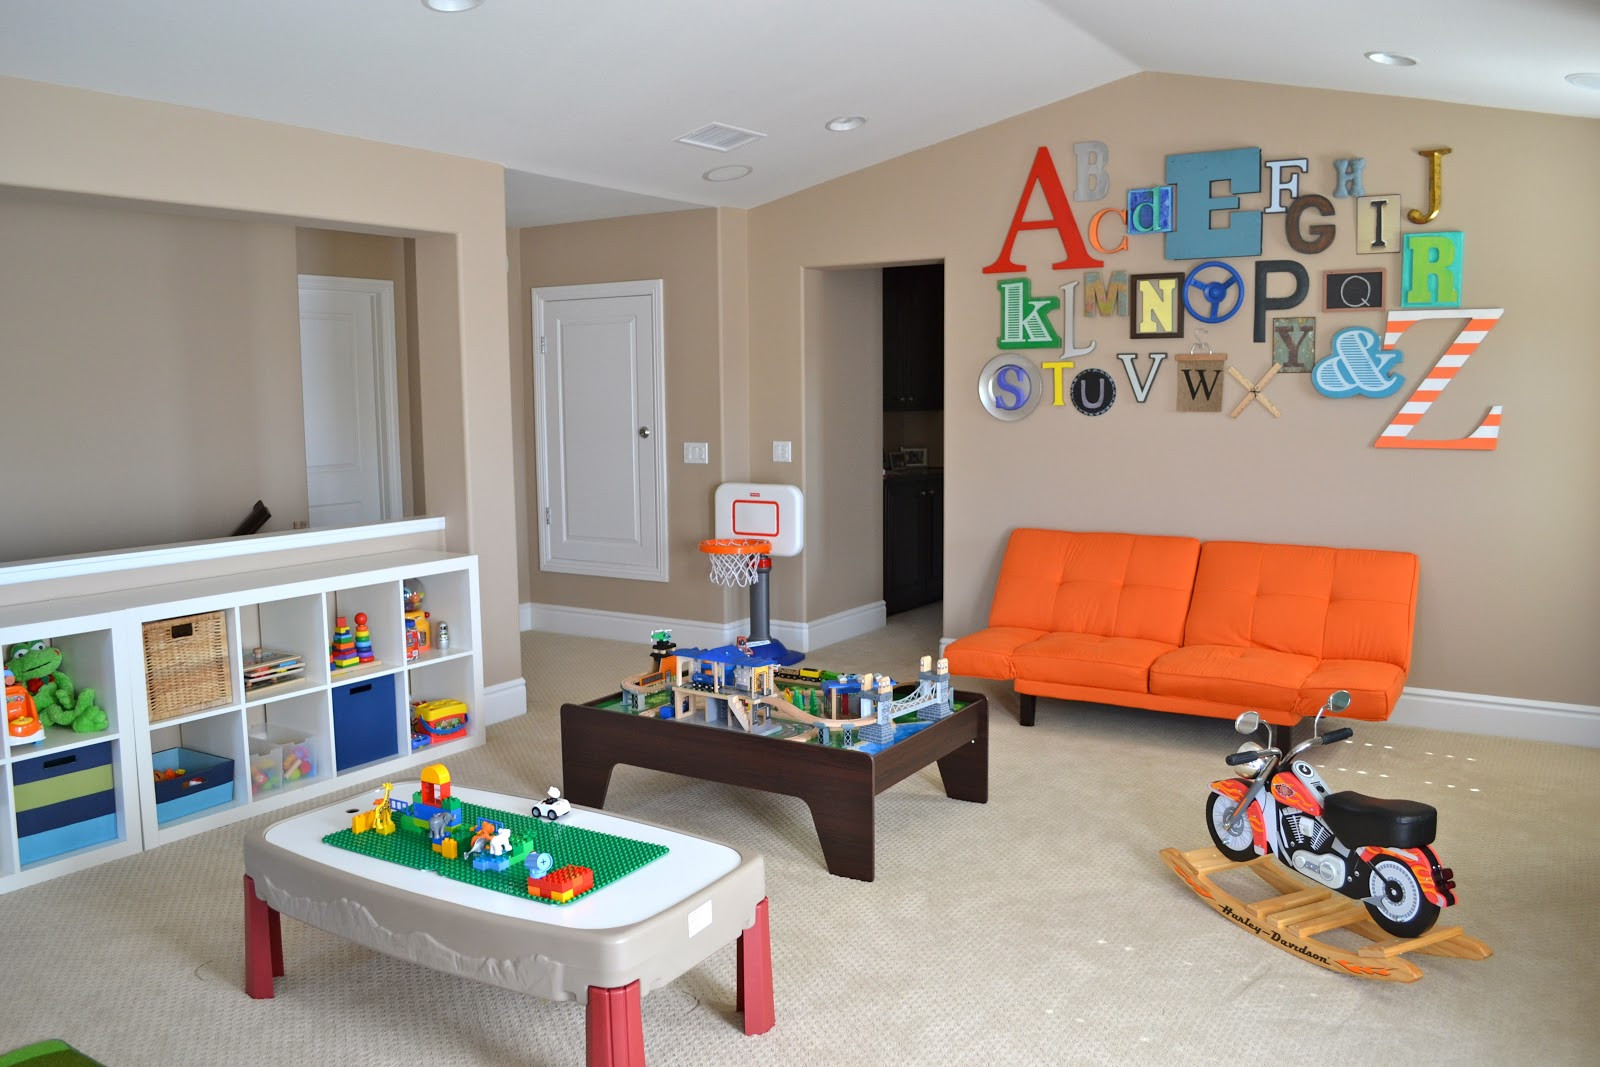 Best ideas about DIY Kids Playrooms . Save or Pin Playroom Tour With Lots of DIY Ideas • Color Made Happy Now.